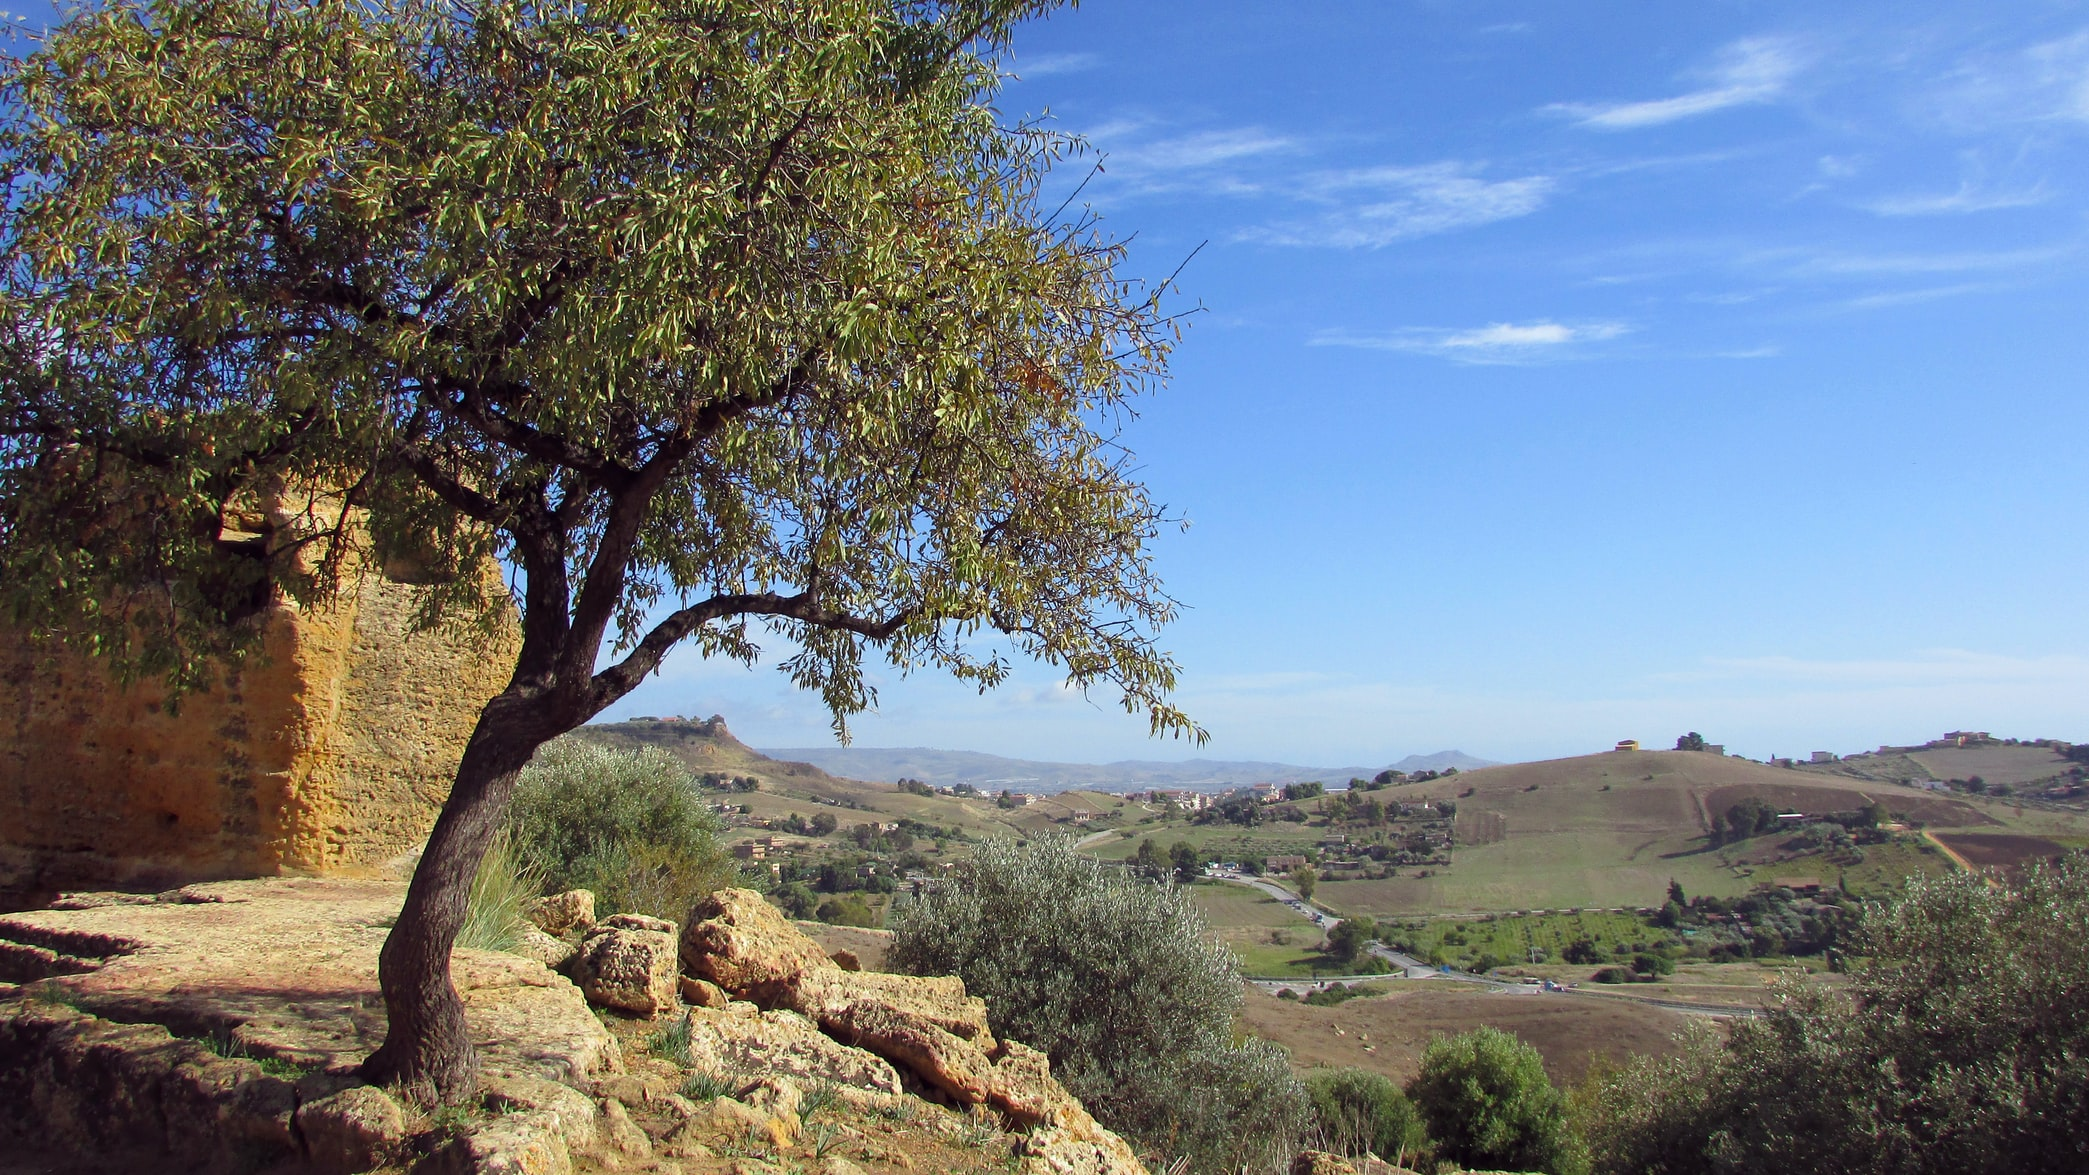 Olive tree with dry land in background